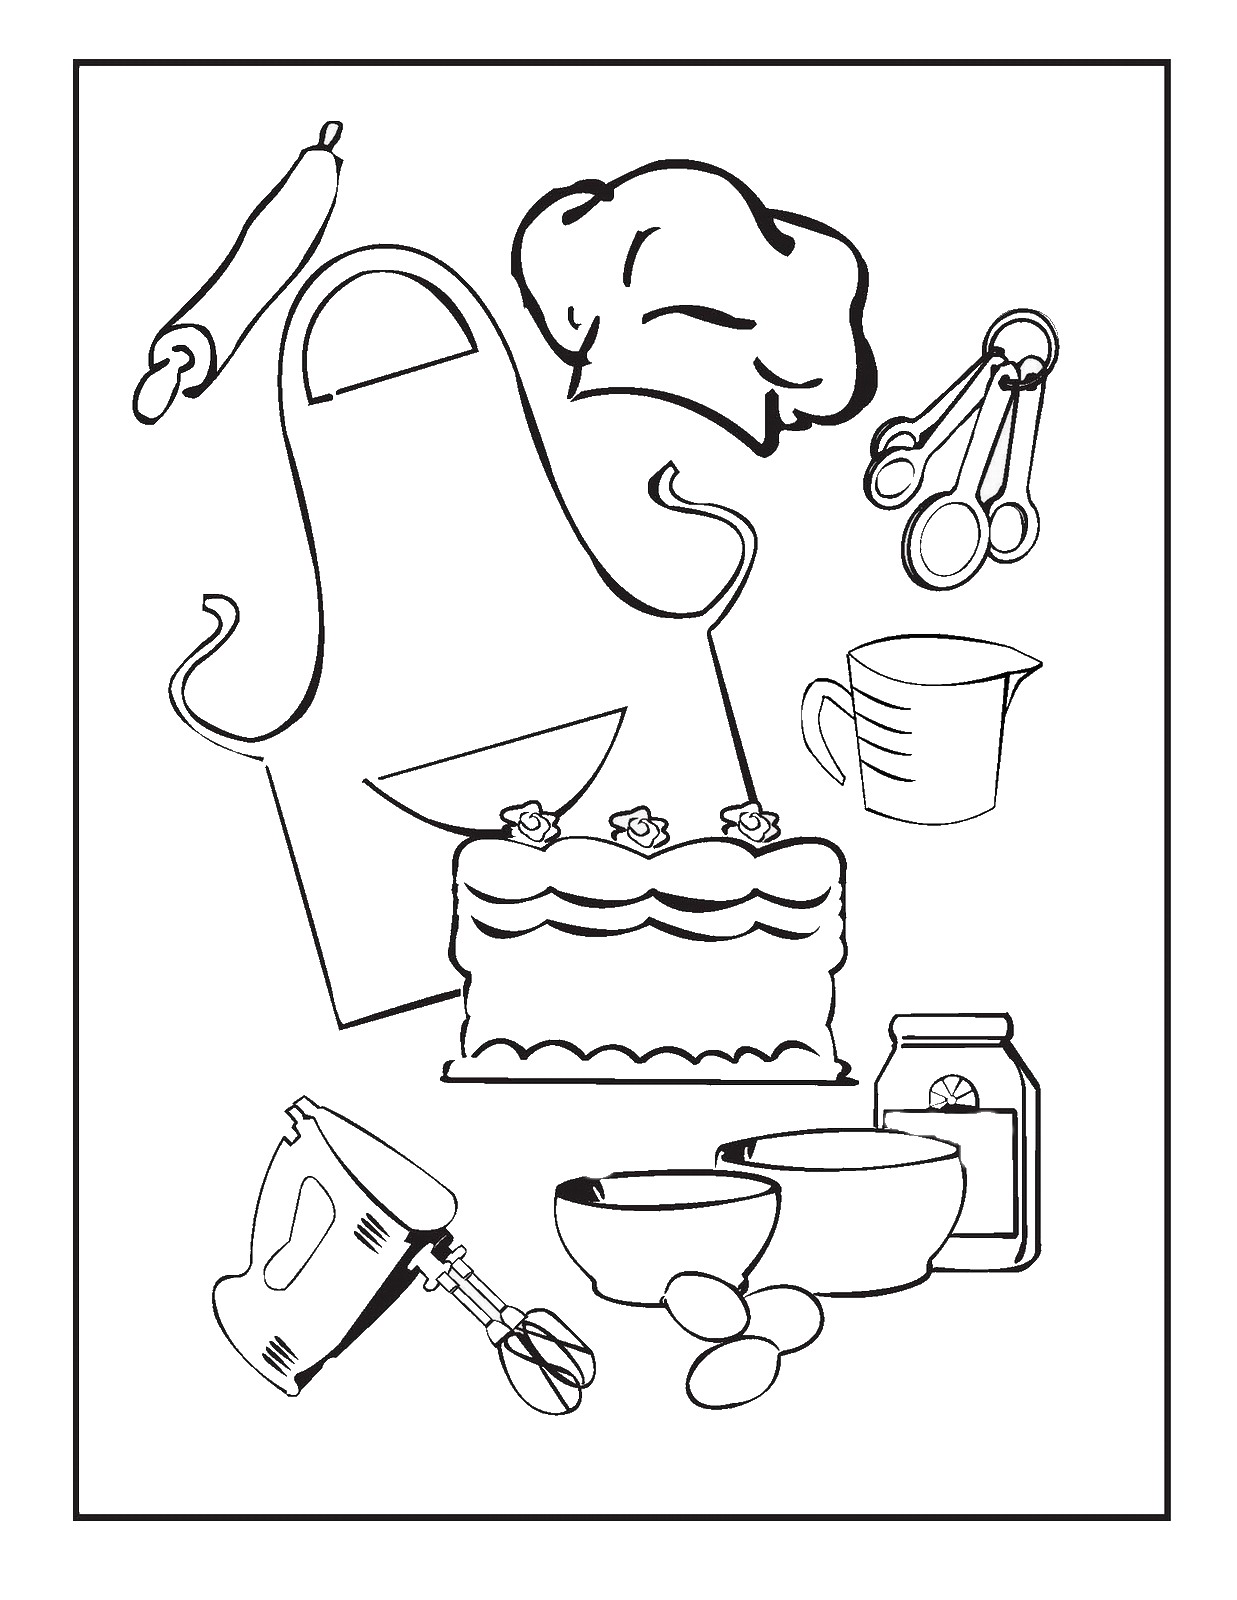 Free Coloring Pages Of Kitchen Tools